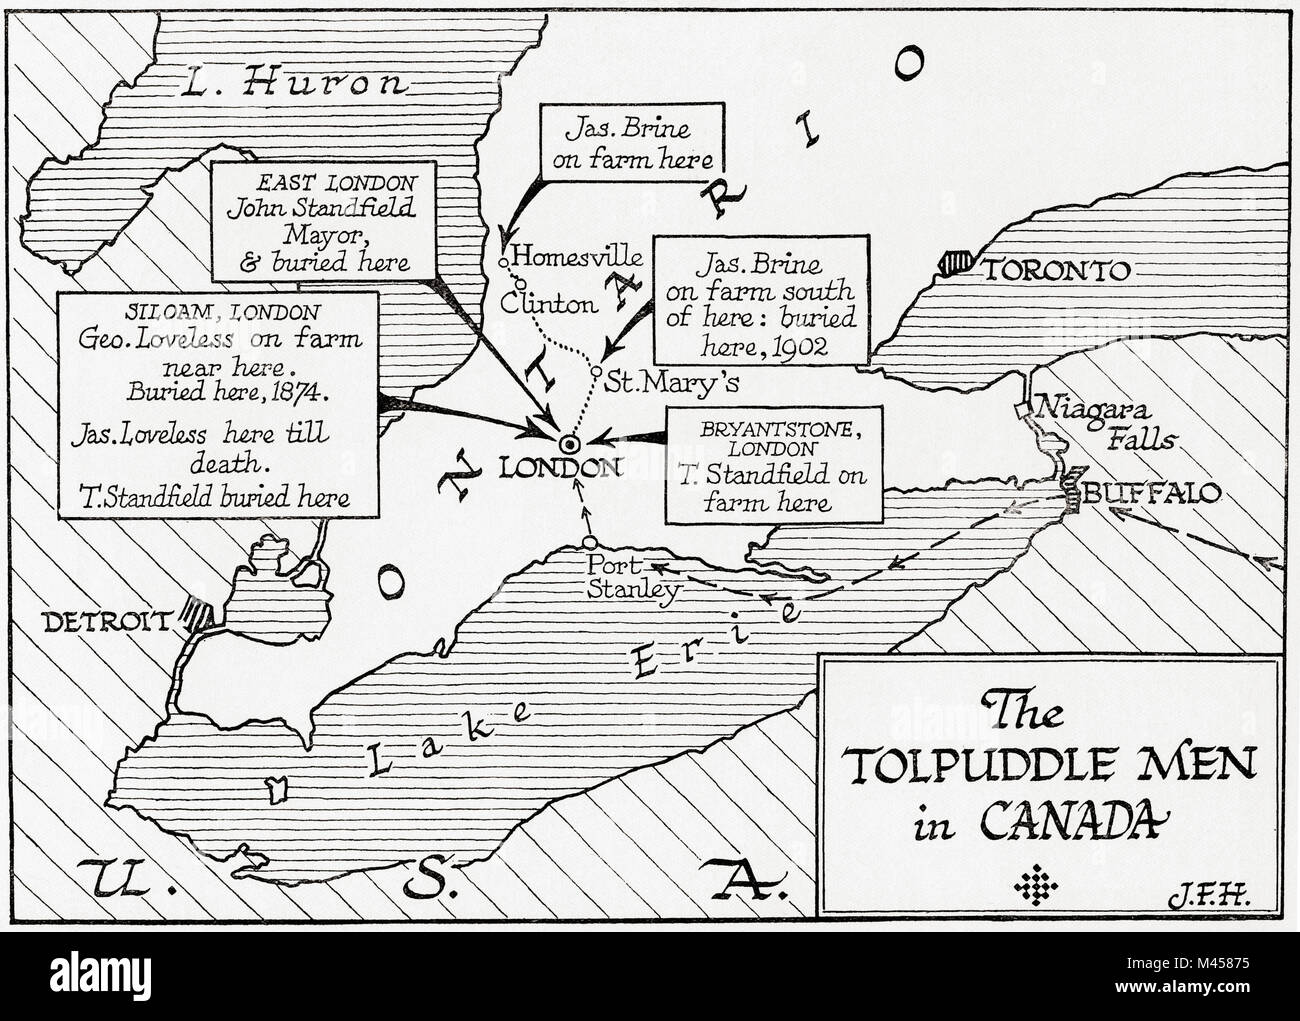 Map showing the placings in Canada of The Tolpuddle Martyrs, a group of 19th-century Dorset agricultural labourers - Stock Image